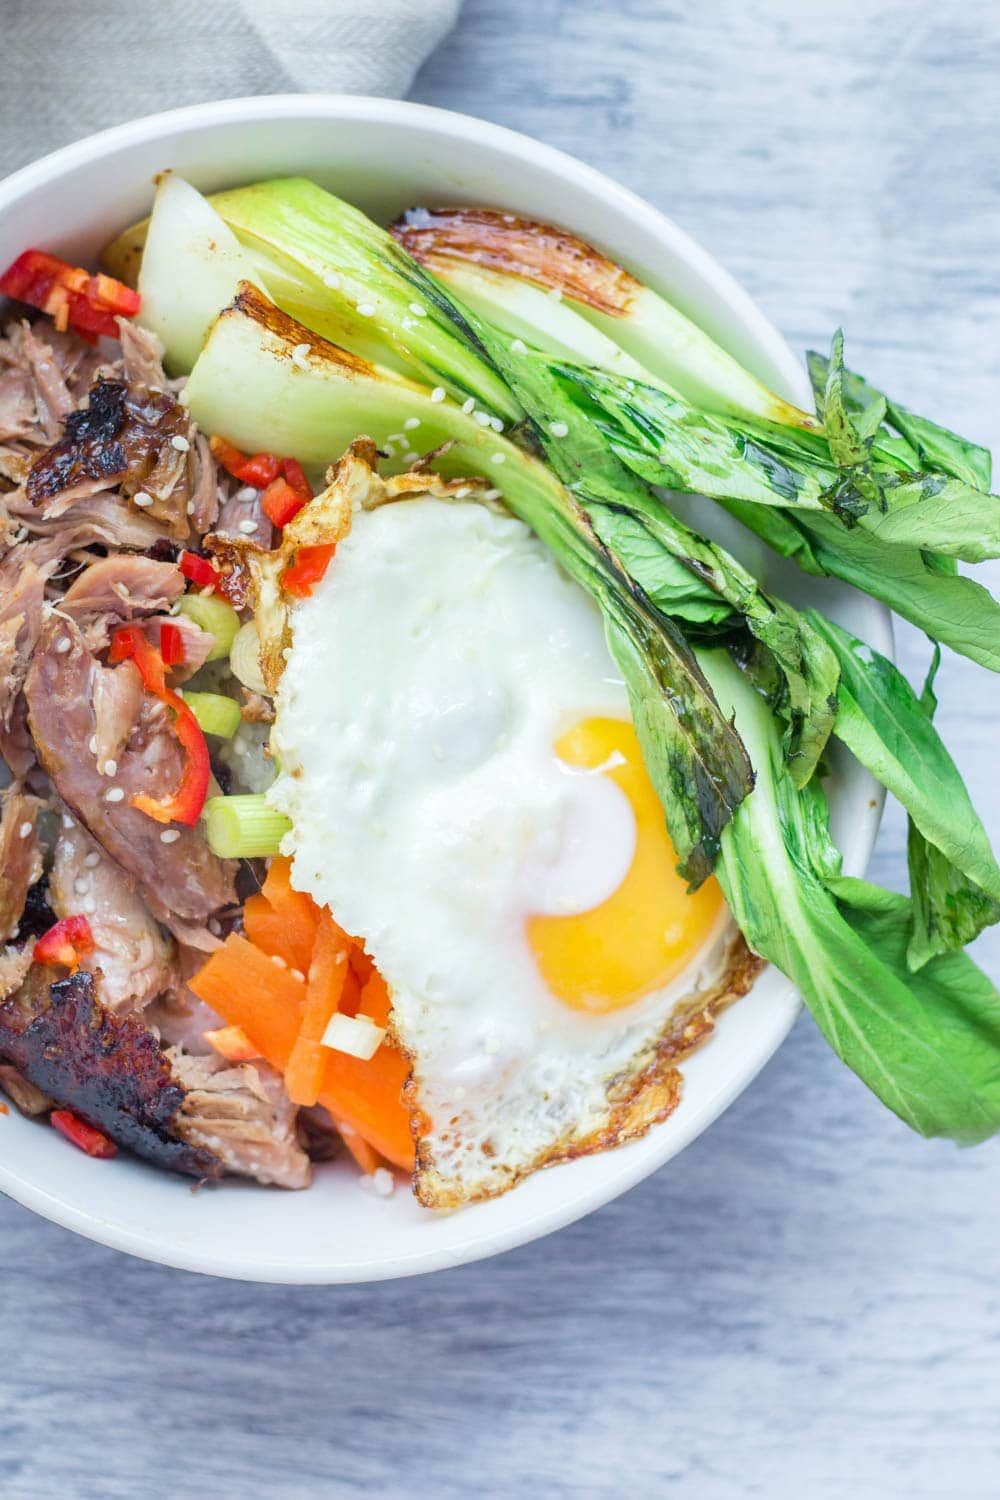 Japanese roast duck legs are shredded and served over sticky rice with pak choi, chilli and perfectly soft fried egg for a tasty dinner all in one bowl!